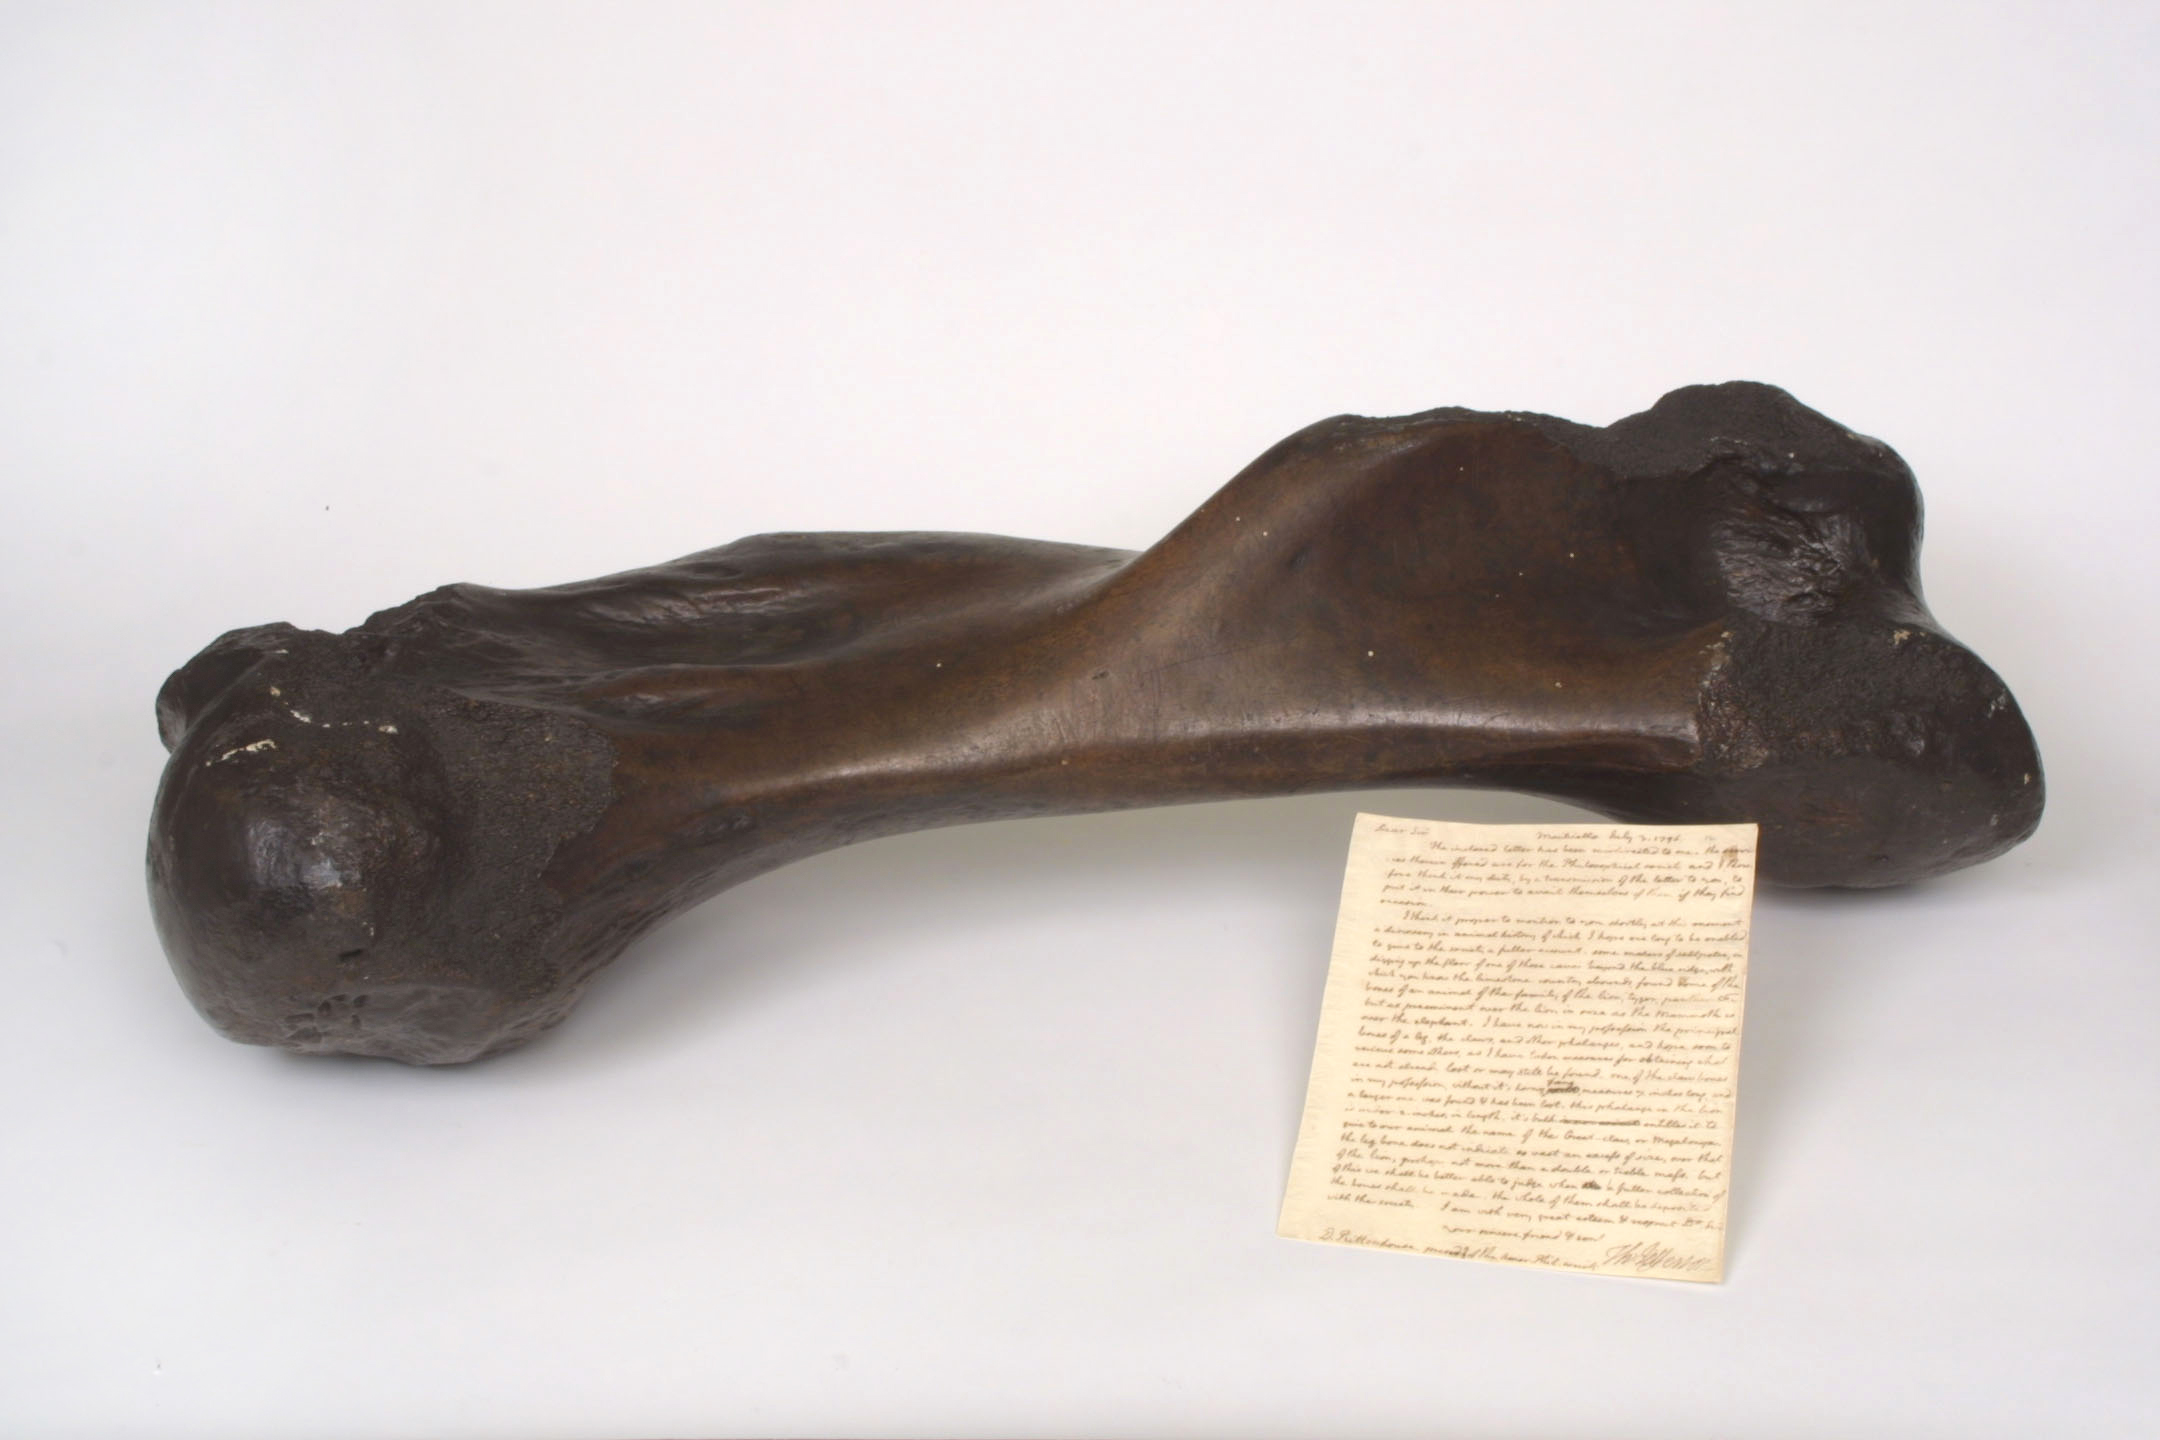 In the 1790s Wistar, one of the nation's great medical anatomists, had become fascinated with the ancient bones of exotic species. At the White House, to which he had been invited by President Thomas Jefferson, Wistar examined the bones of a mastodon that George Rogers Clark unearthed in 1807 at Bone Lick, Kentucky. Wistar then wrote the detailed description pictured next to the bone.